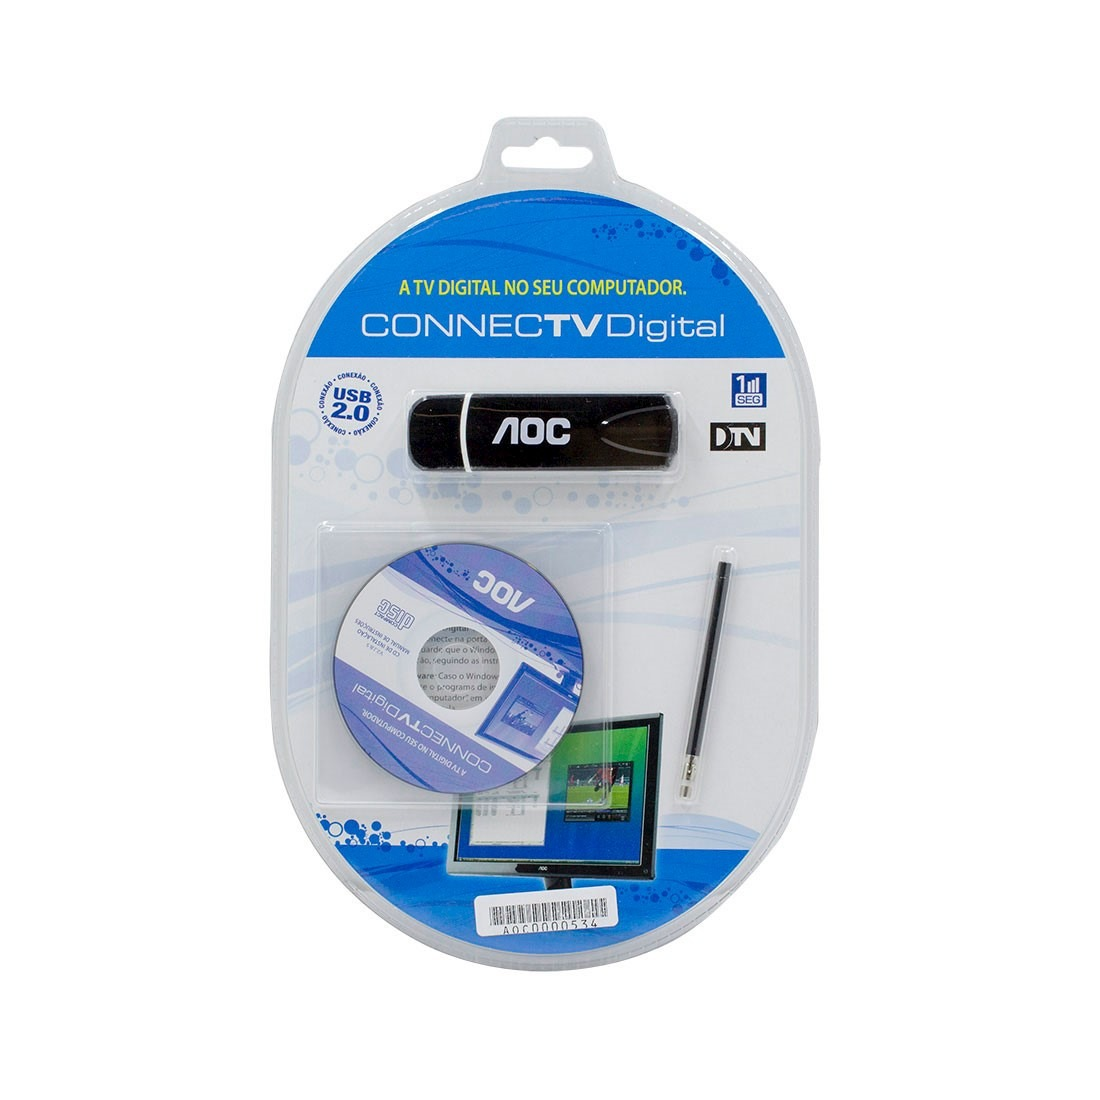 AOC CONNECTV DIGITAL DOWNLOAD DRIVER